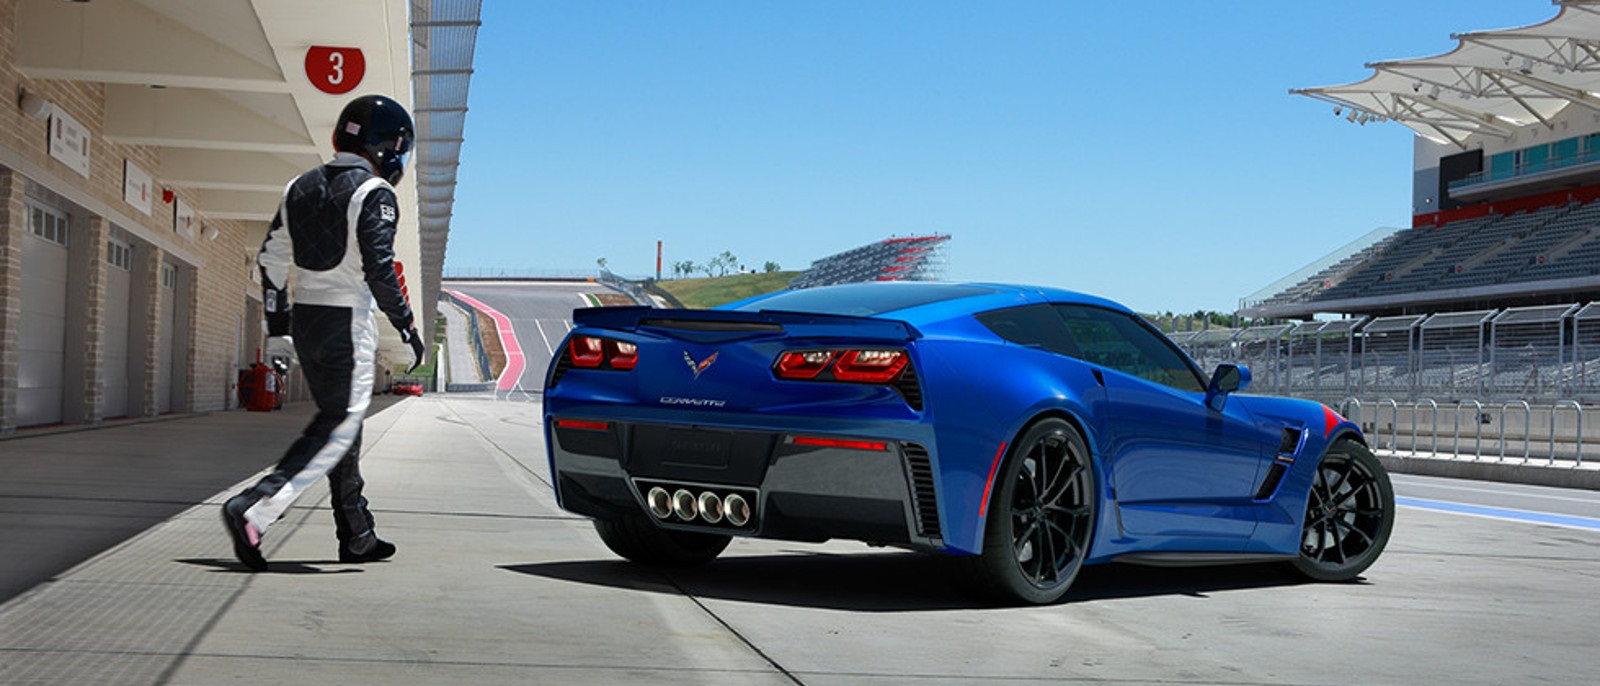 2017-chevrolet-corvette-grand-sport-mo-performance-rear1